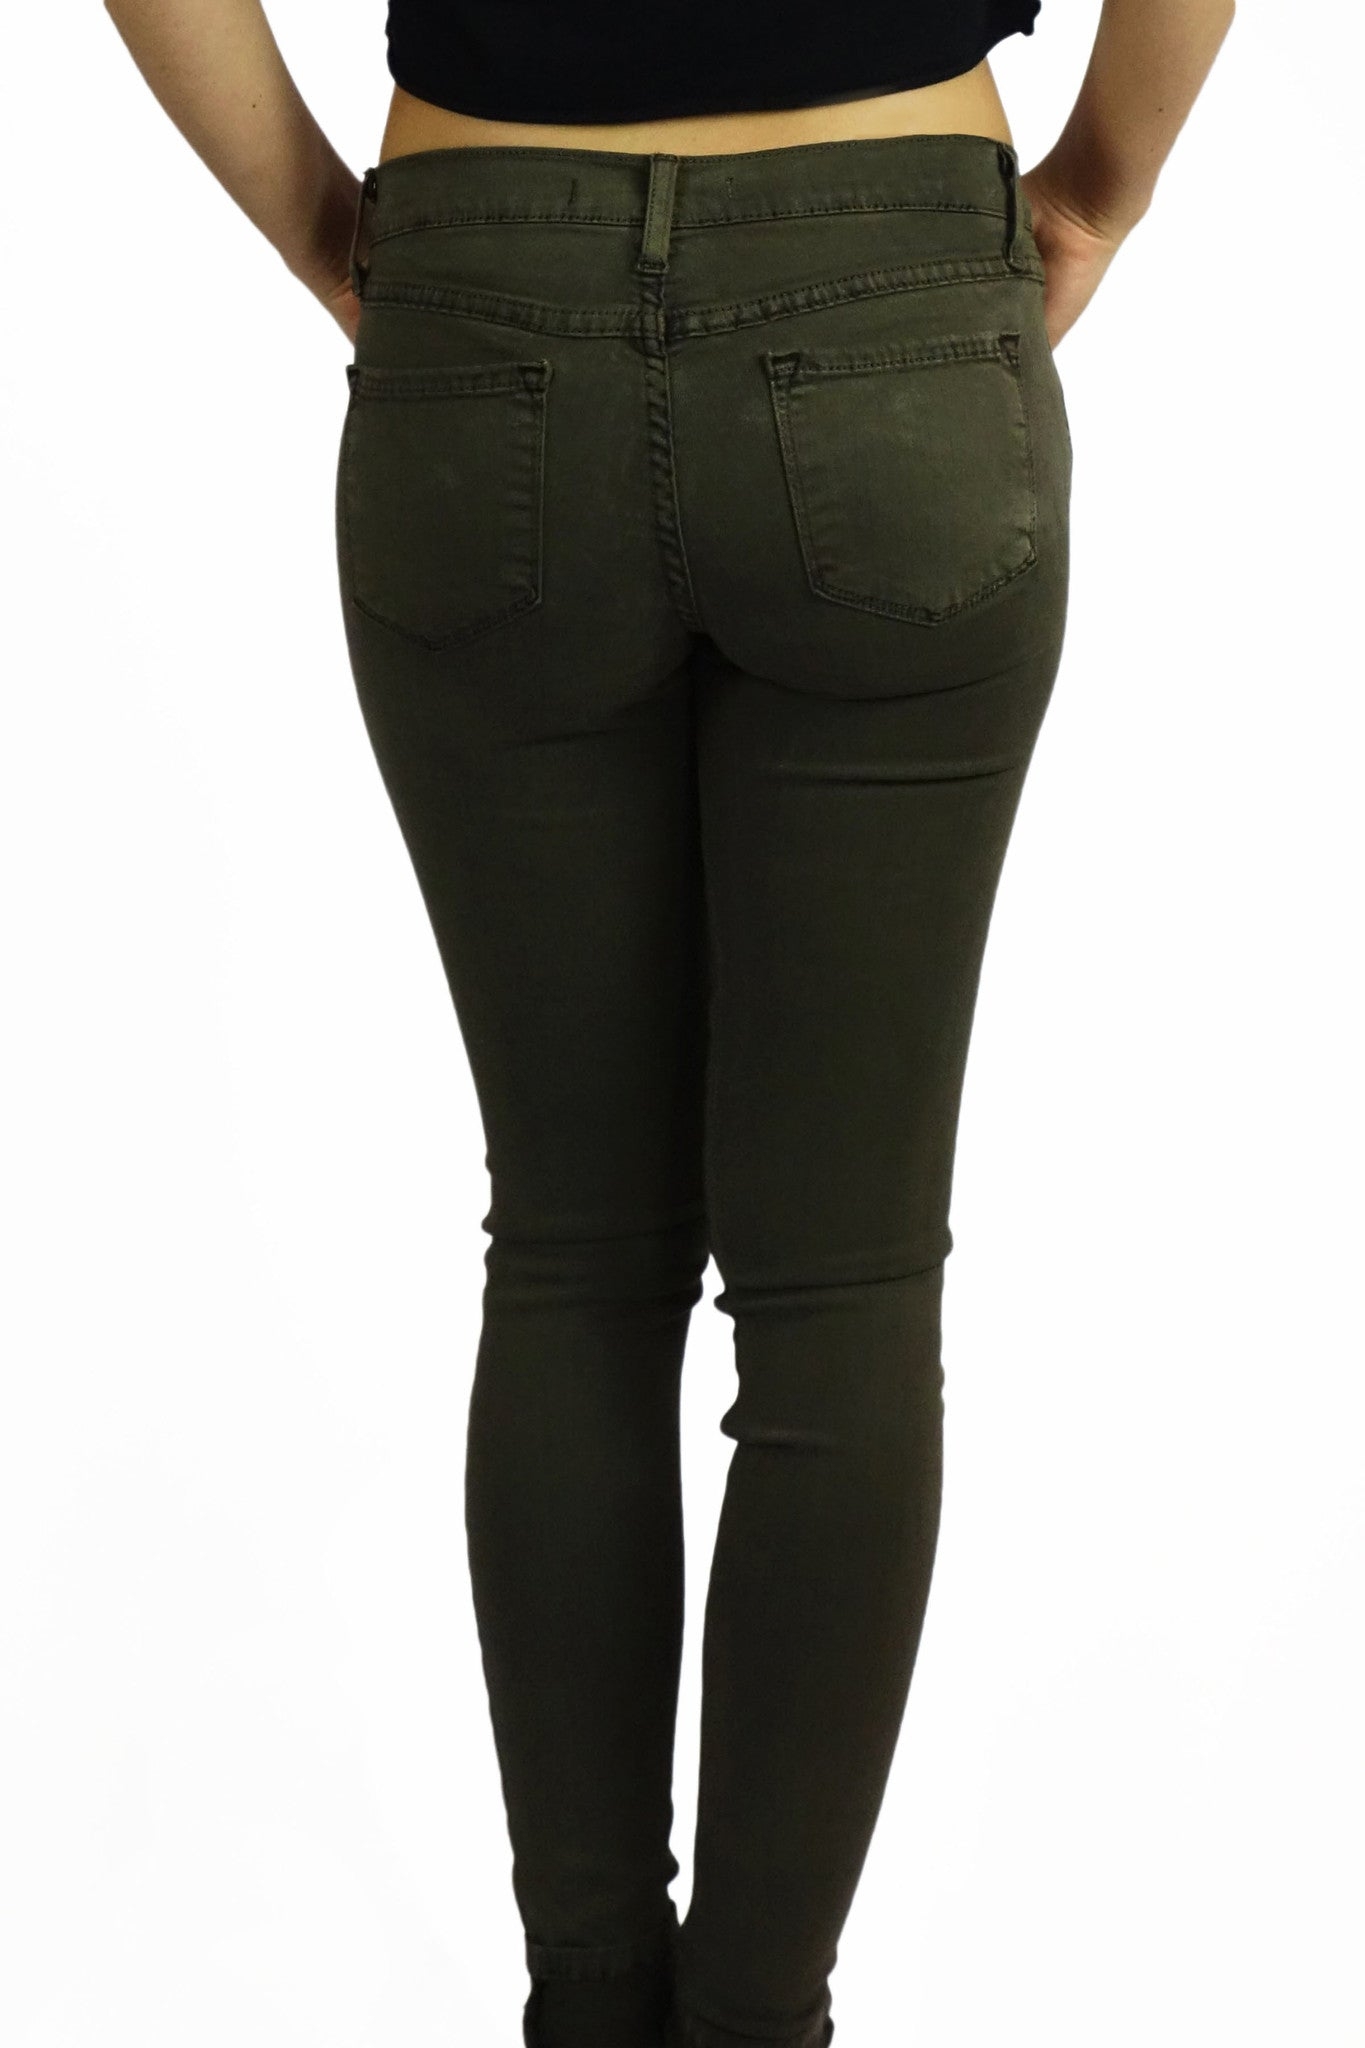 Flying Monkey Vintage Dyed Cuffed Skinny Jeans - Army Green- BOTTOMS-FLYING MONKEY-Free Vibrationz